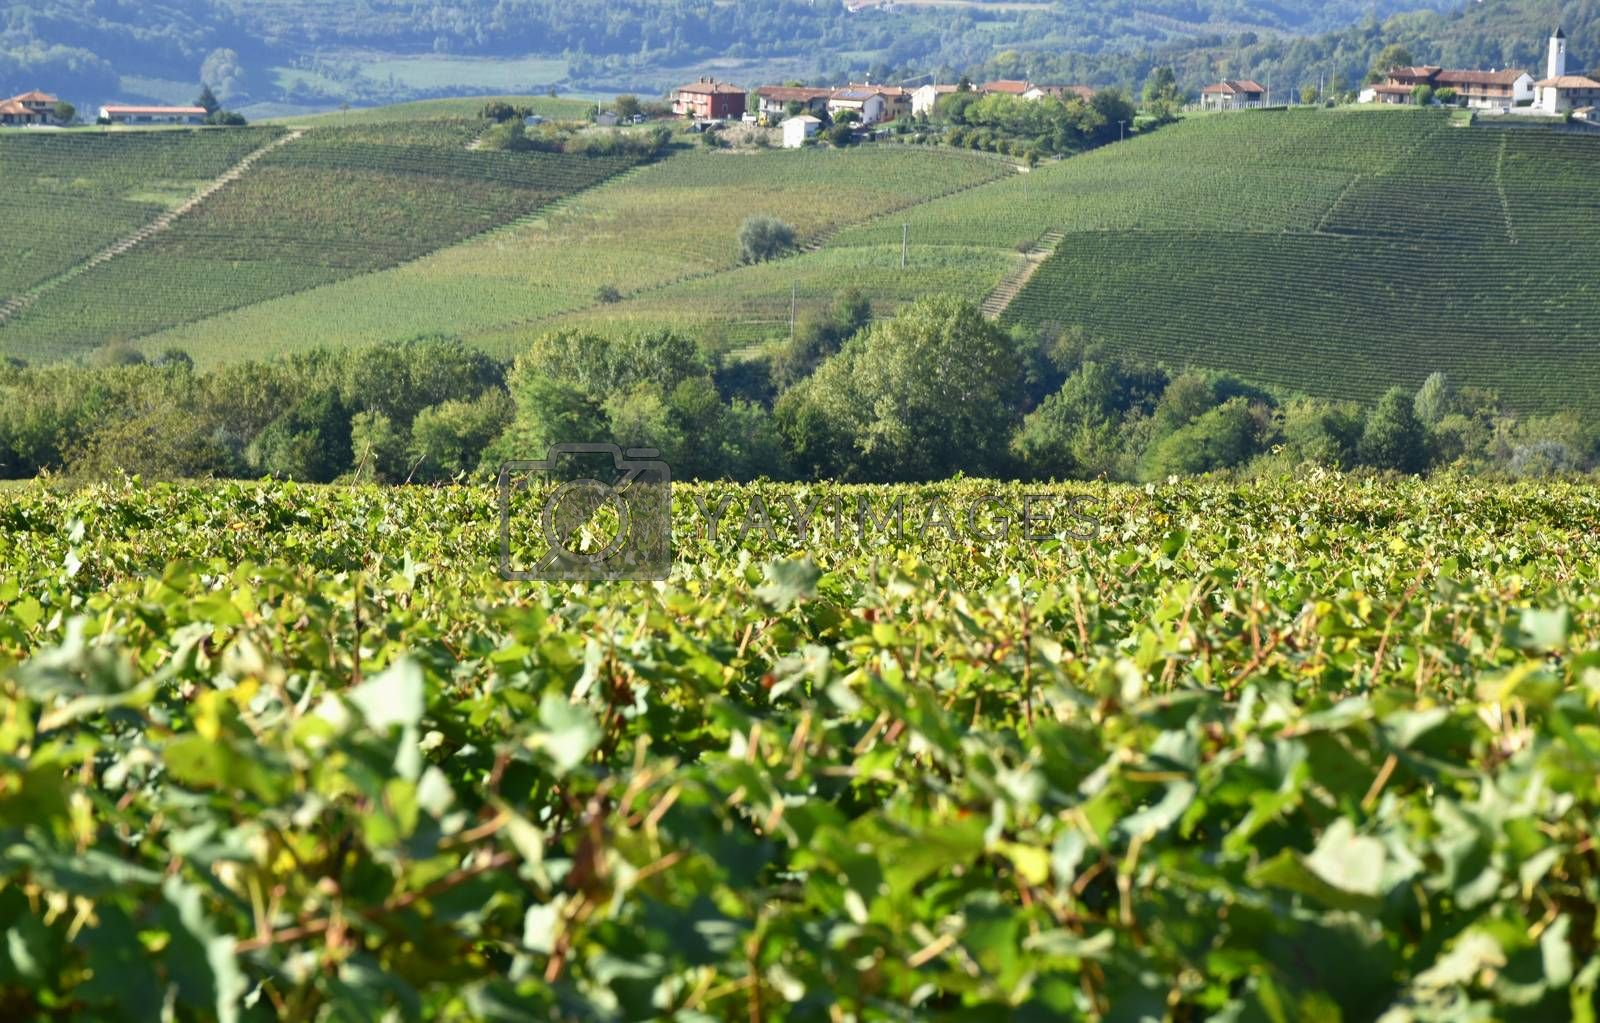 Langhe vineyards panorama famouse for wine production, Italy, Piedmont.